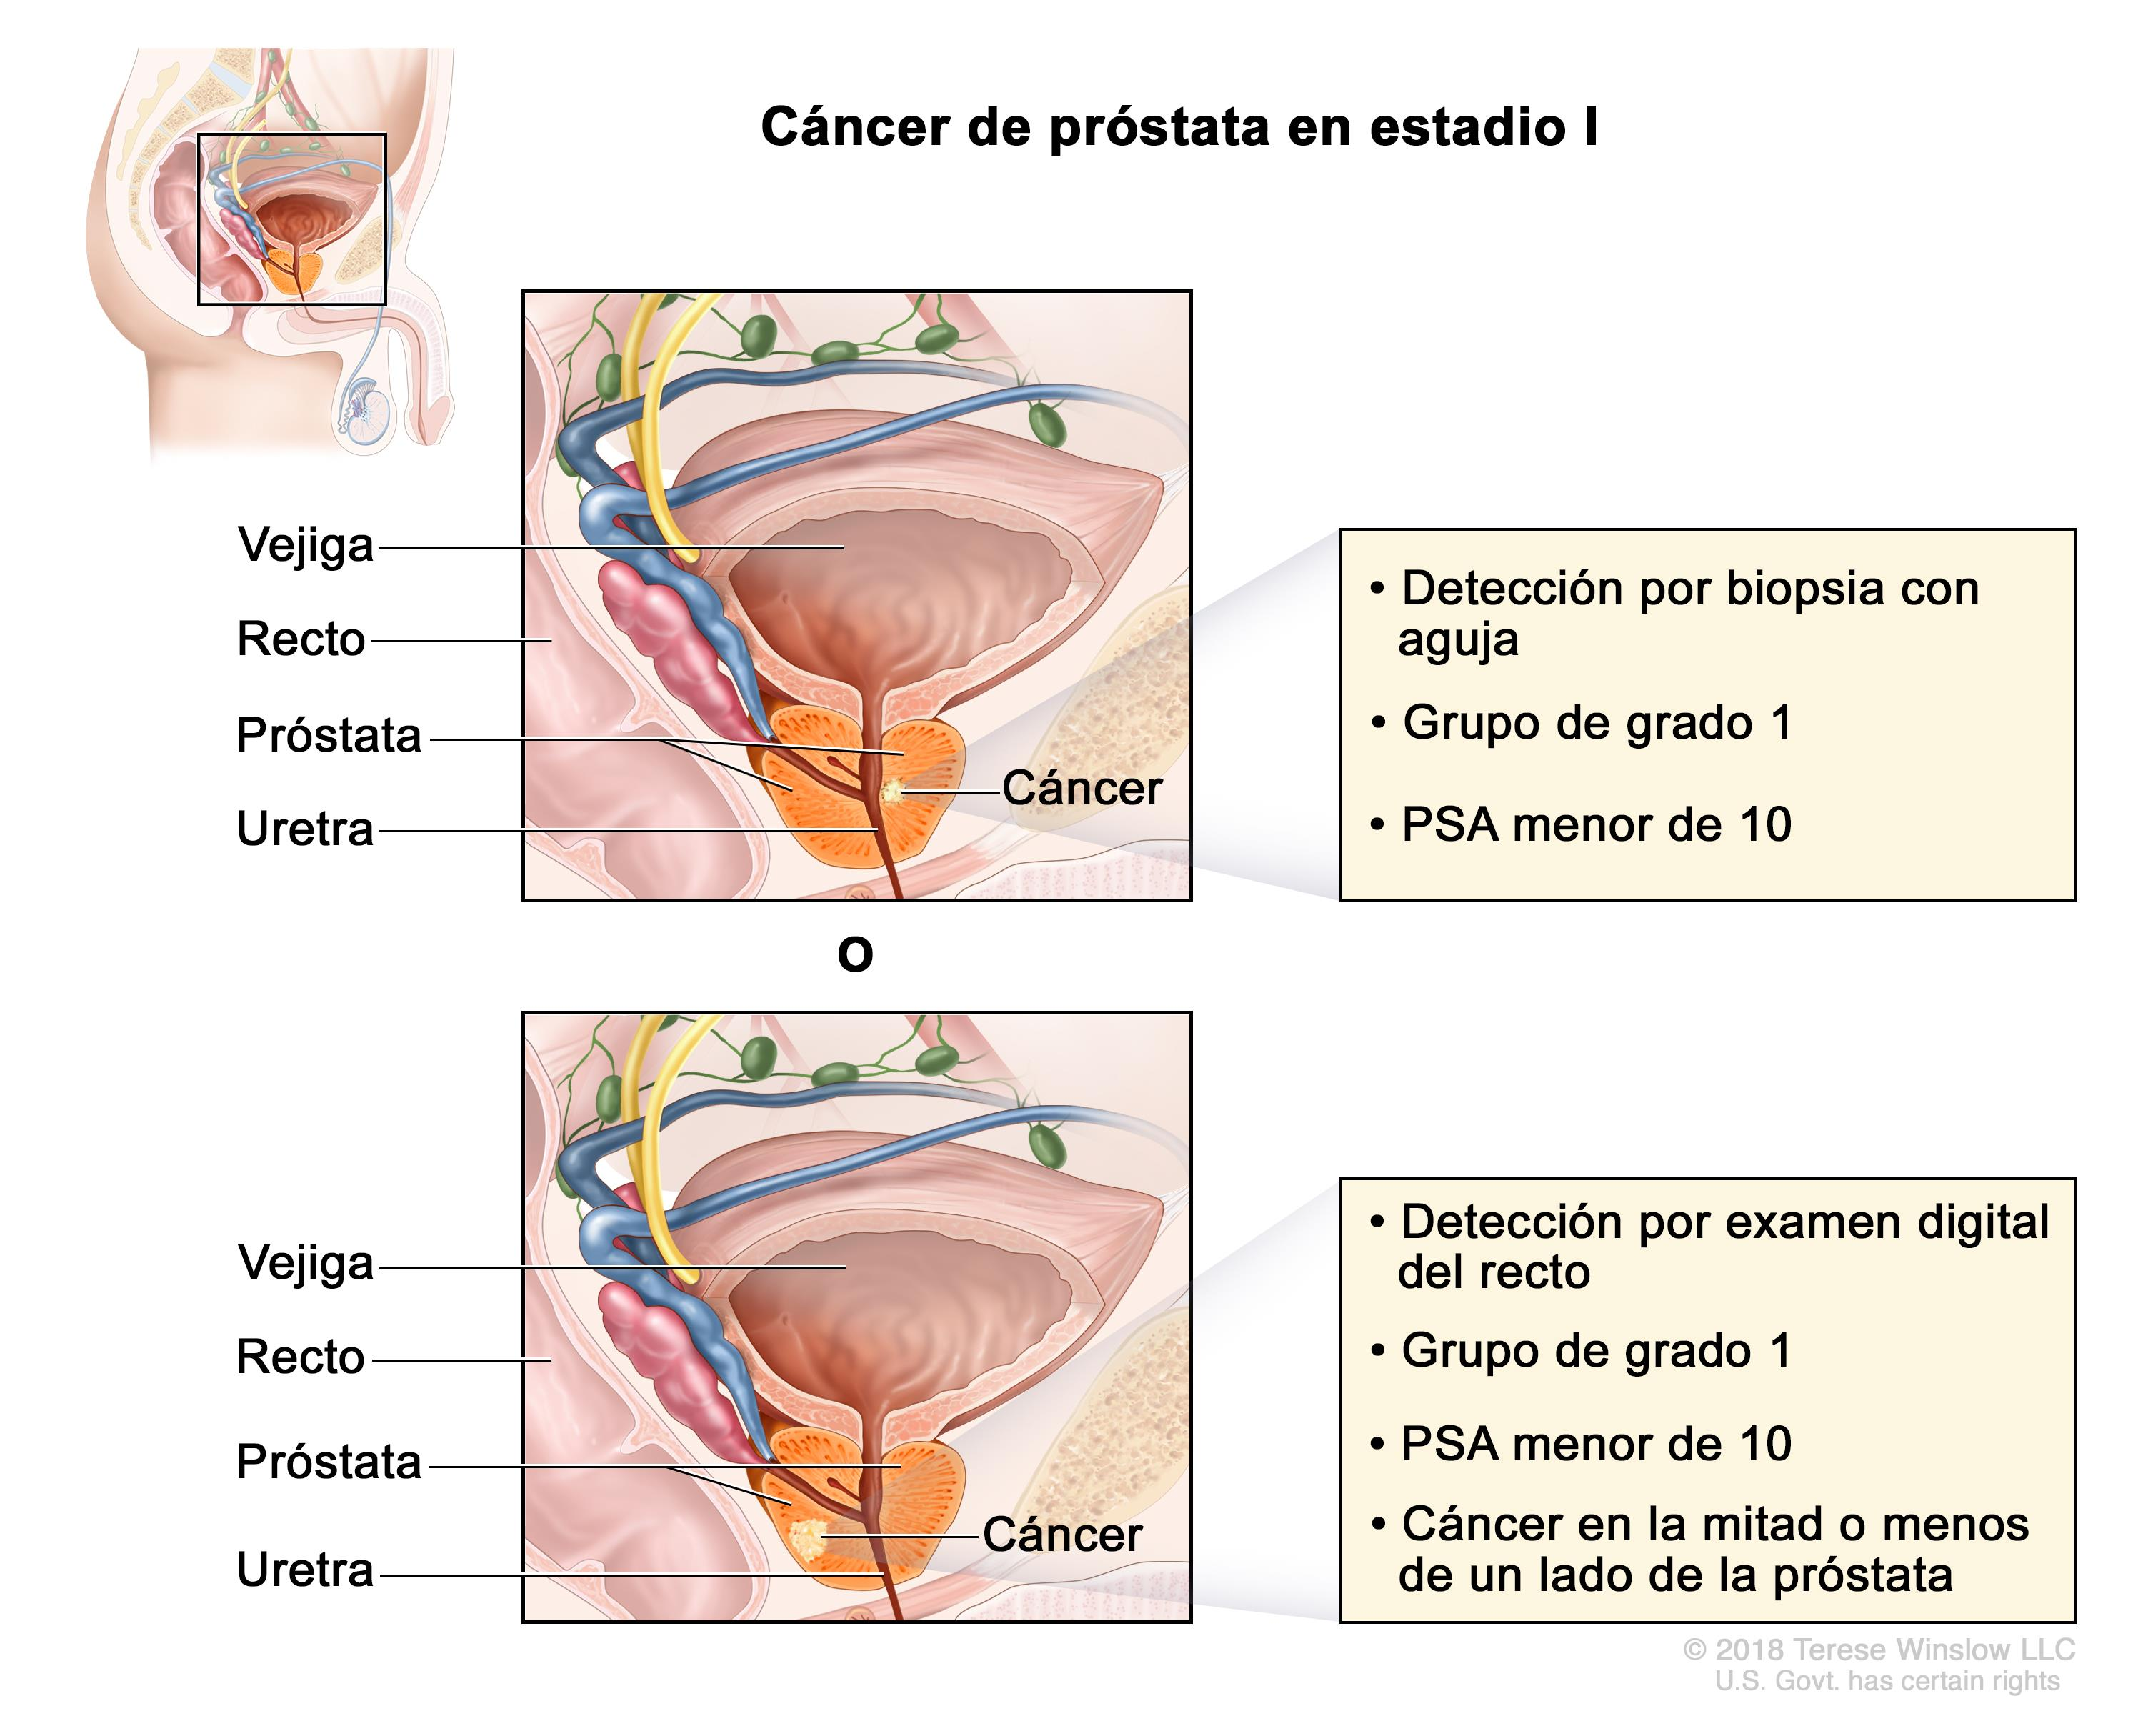 Adenocarcinoma de próstata incidental